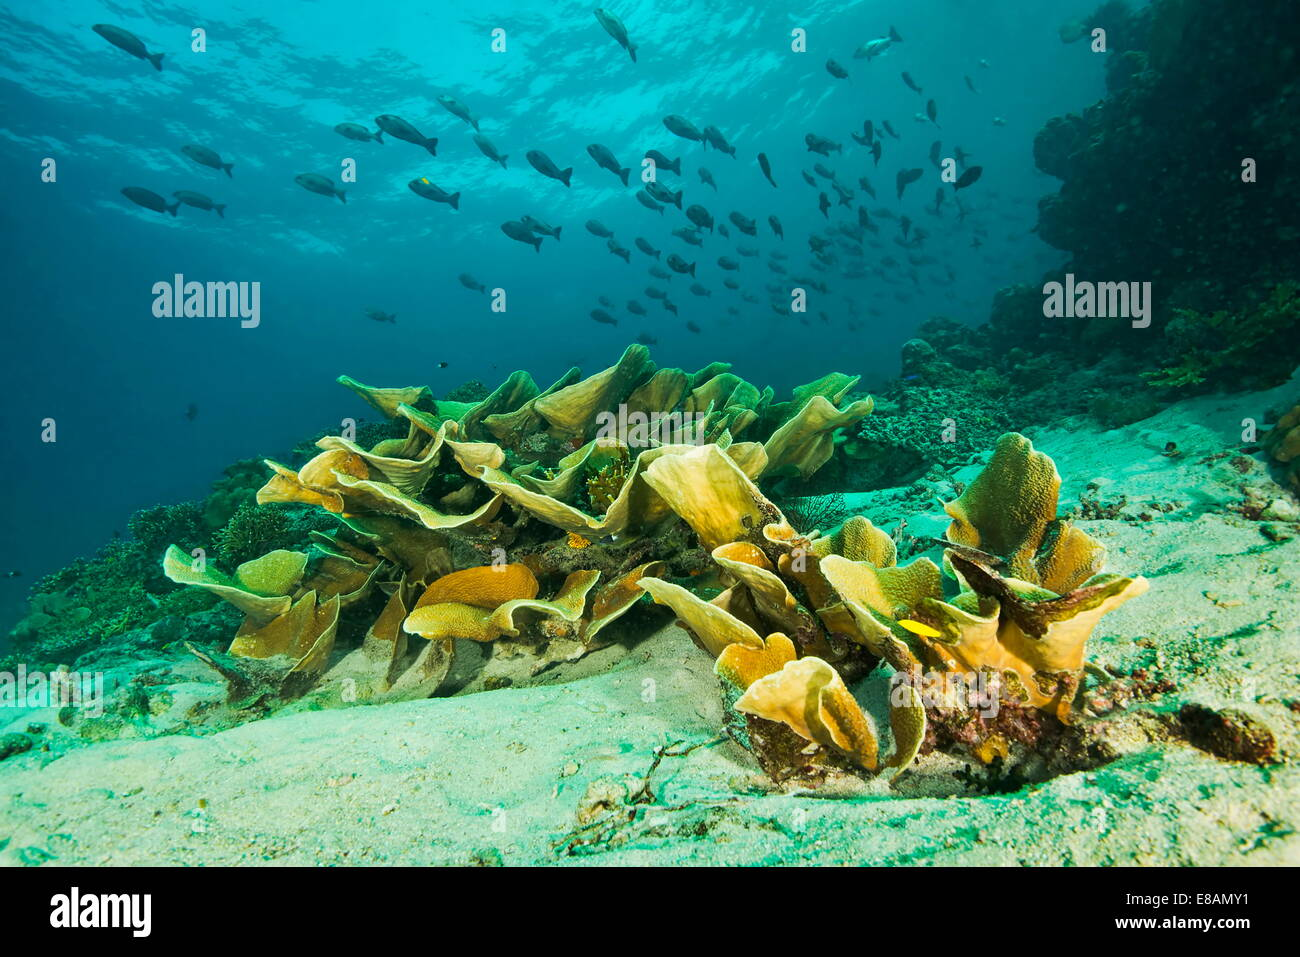 Marine plants and seabed, Uepi Point, Uepi Island, New Britain, Solomon Islands - Stock Image